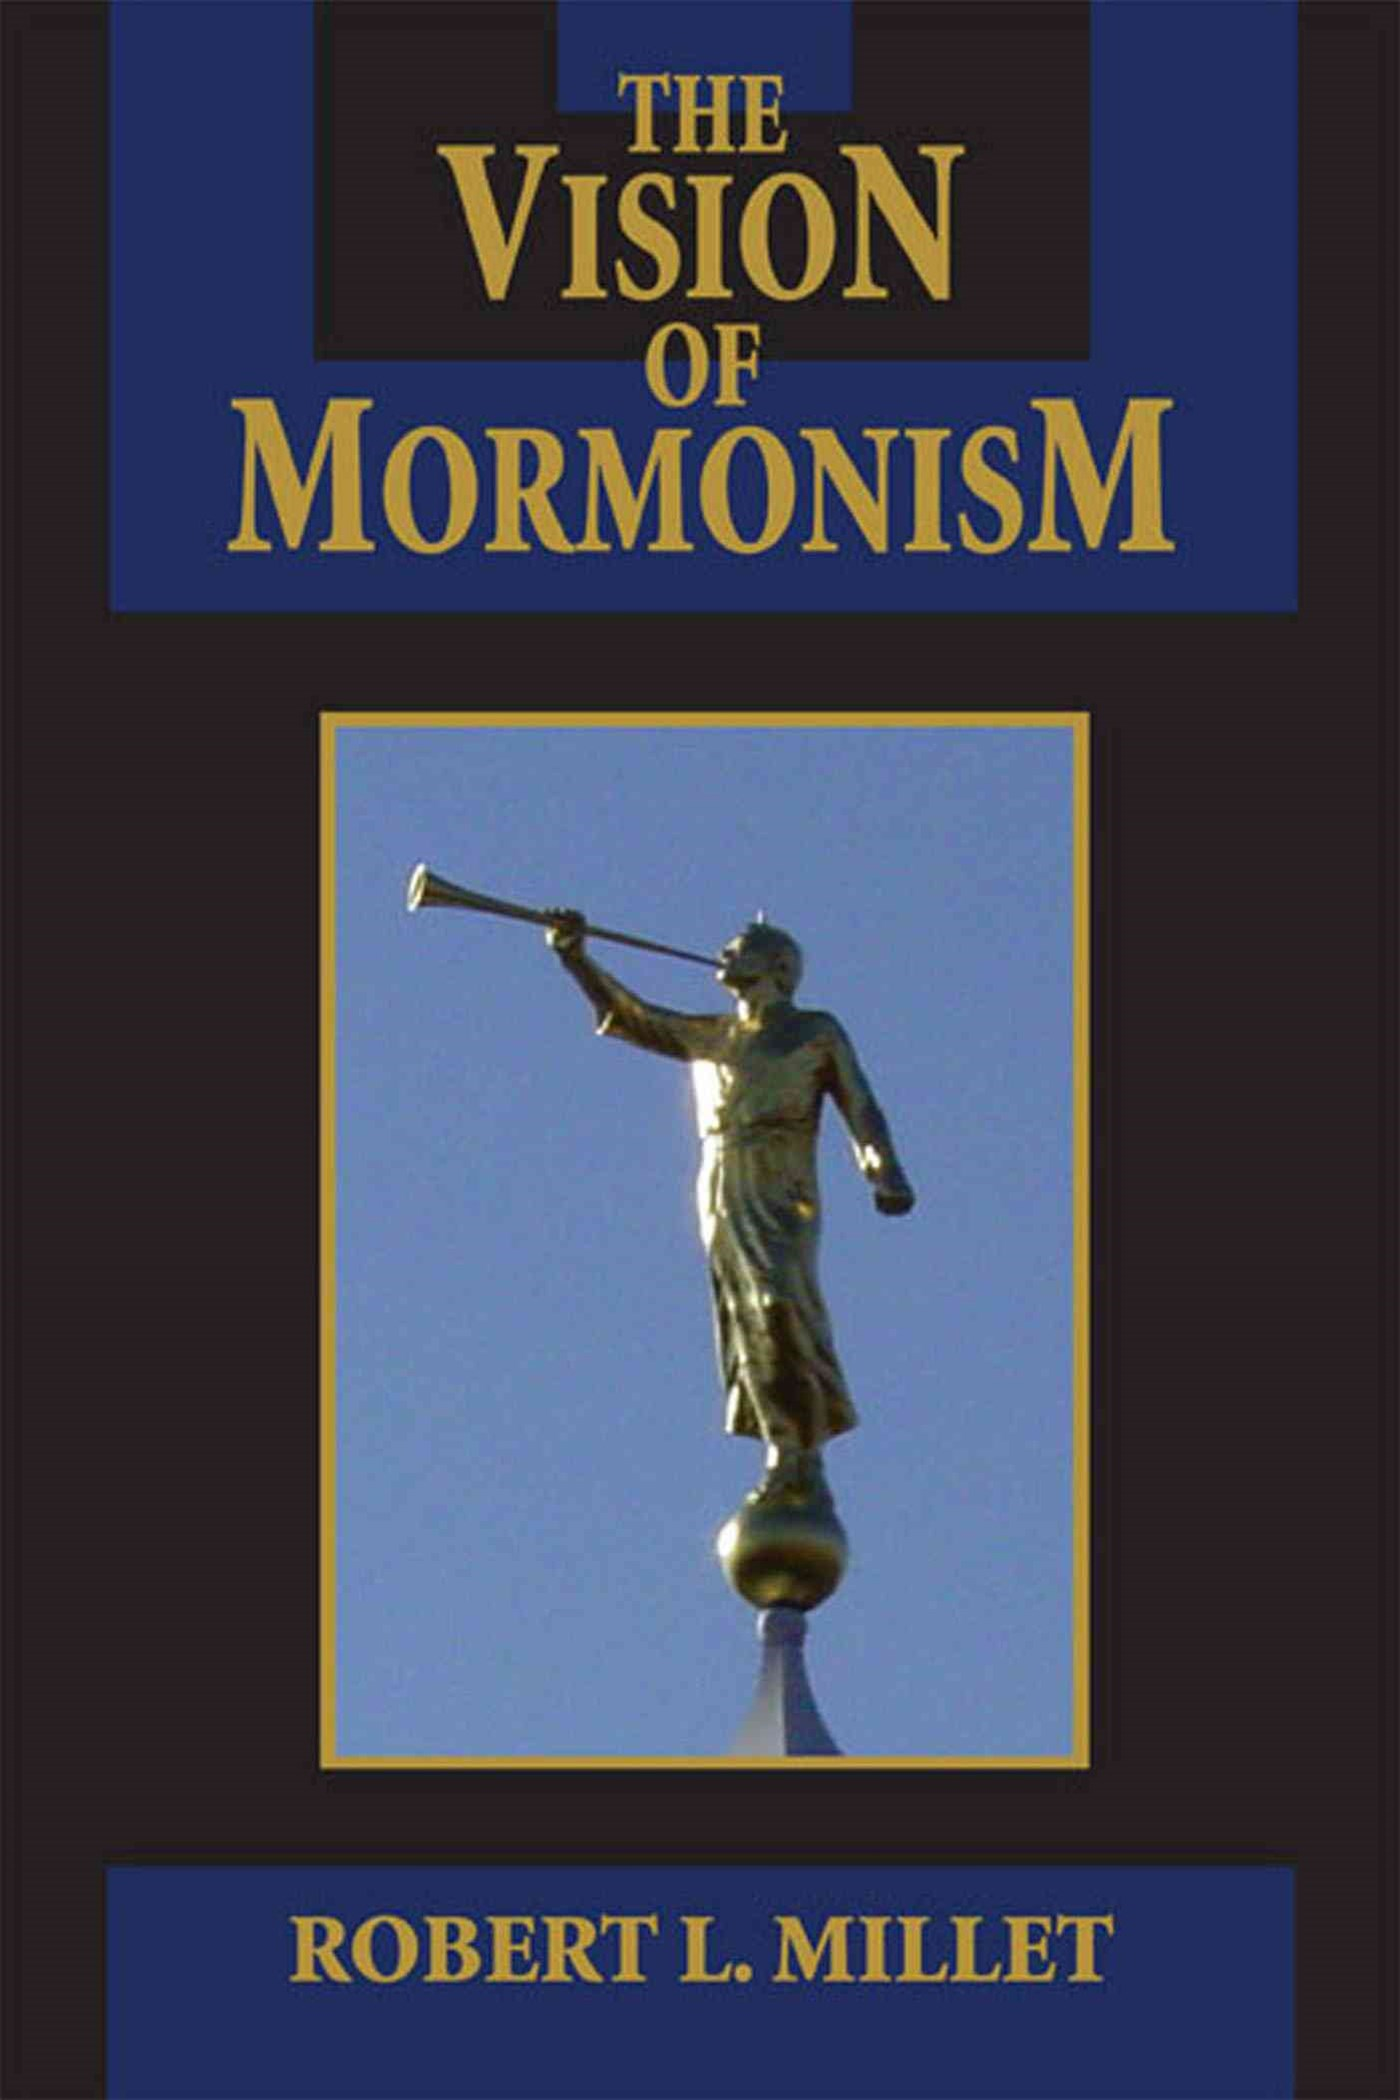 The Vision of Mormonism